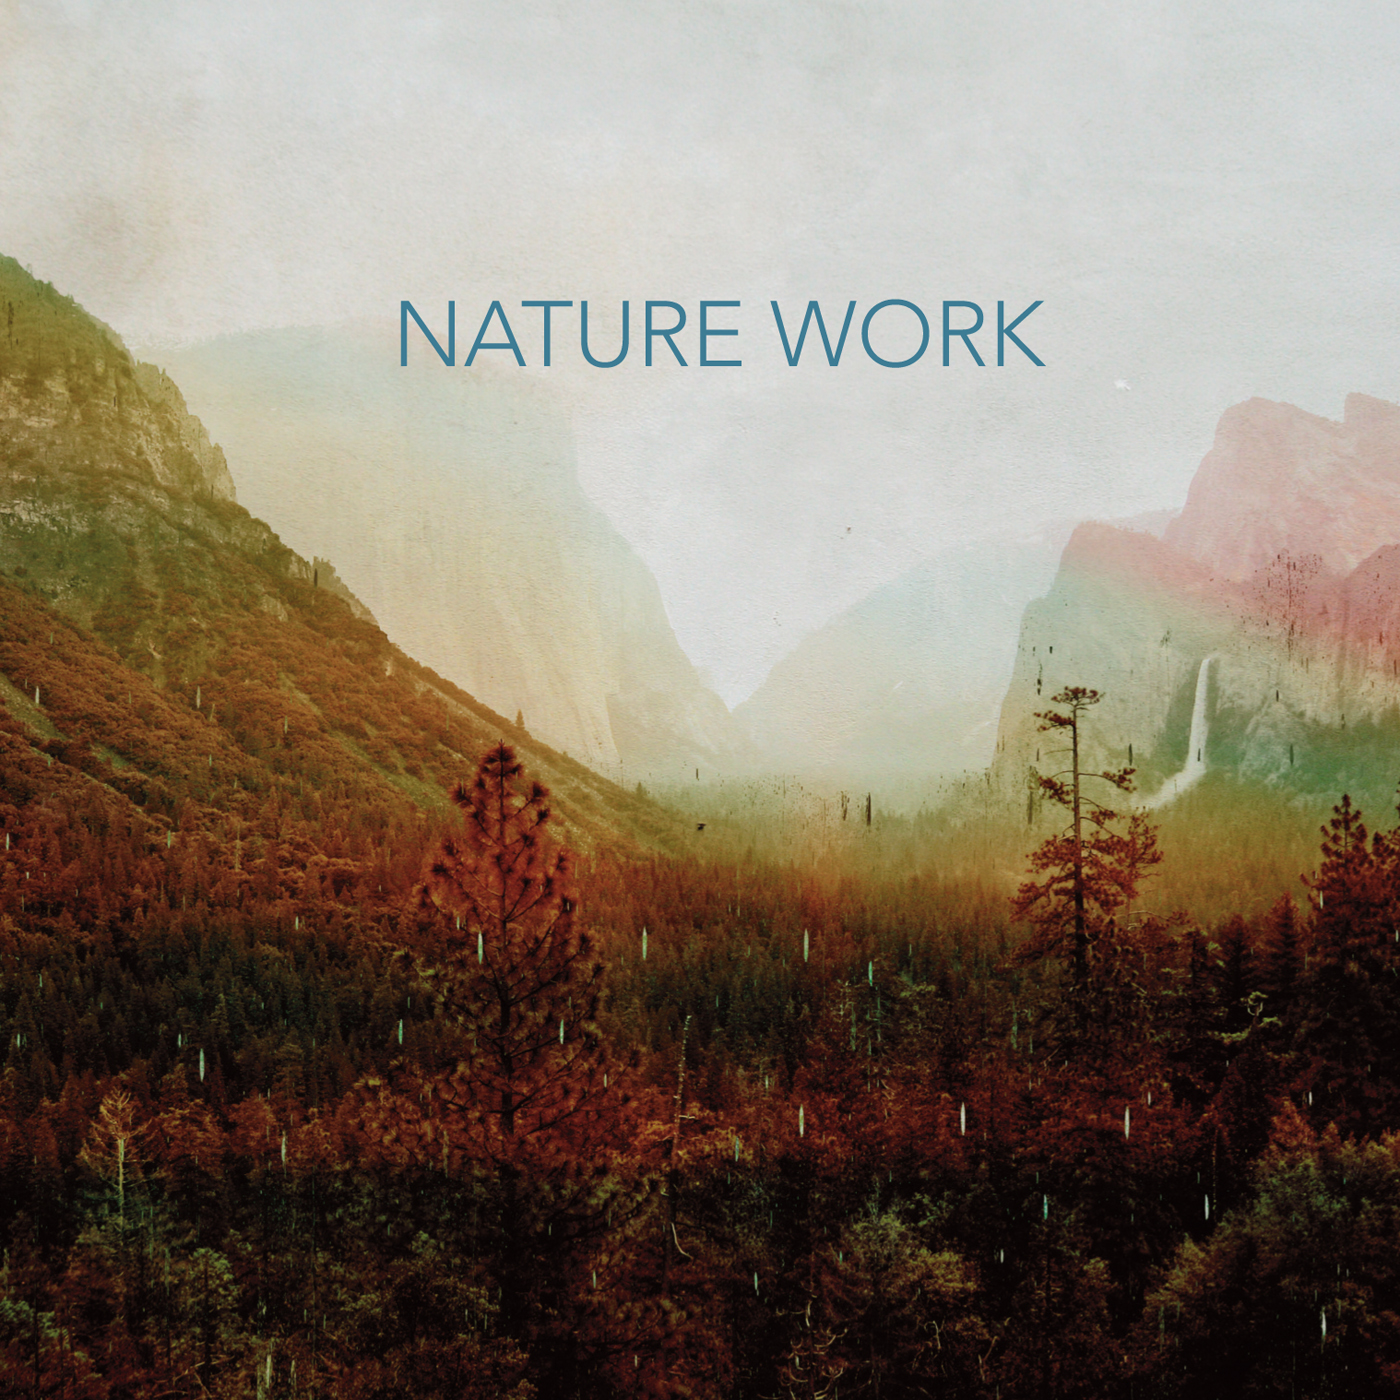 Nature Work Album Art.jpeg